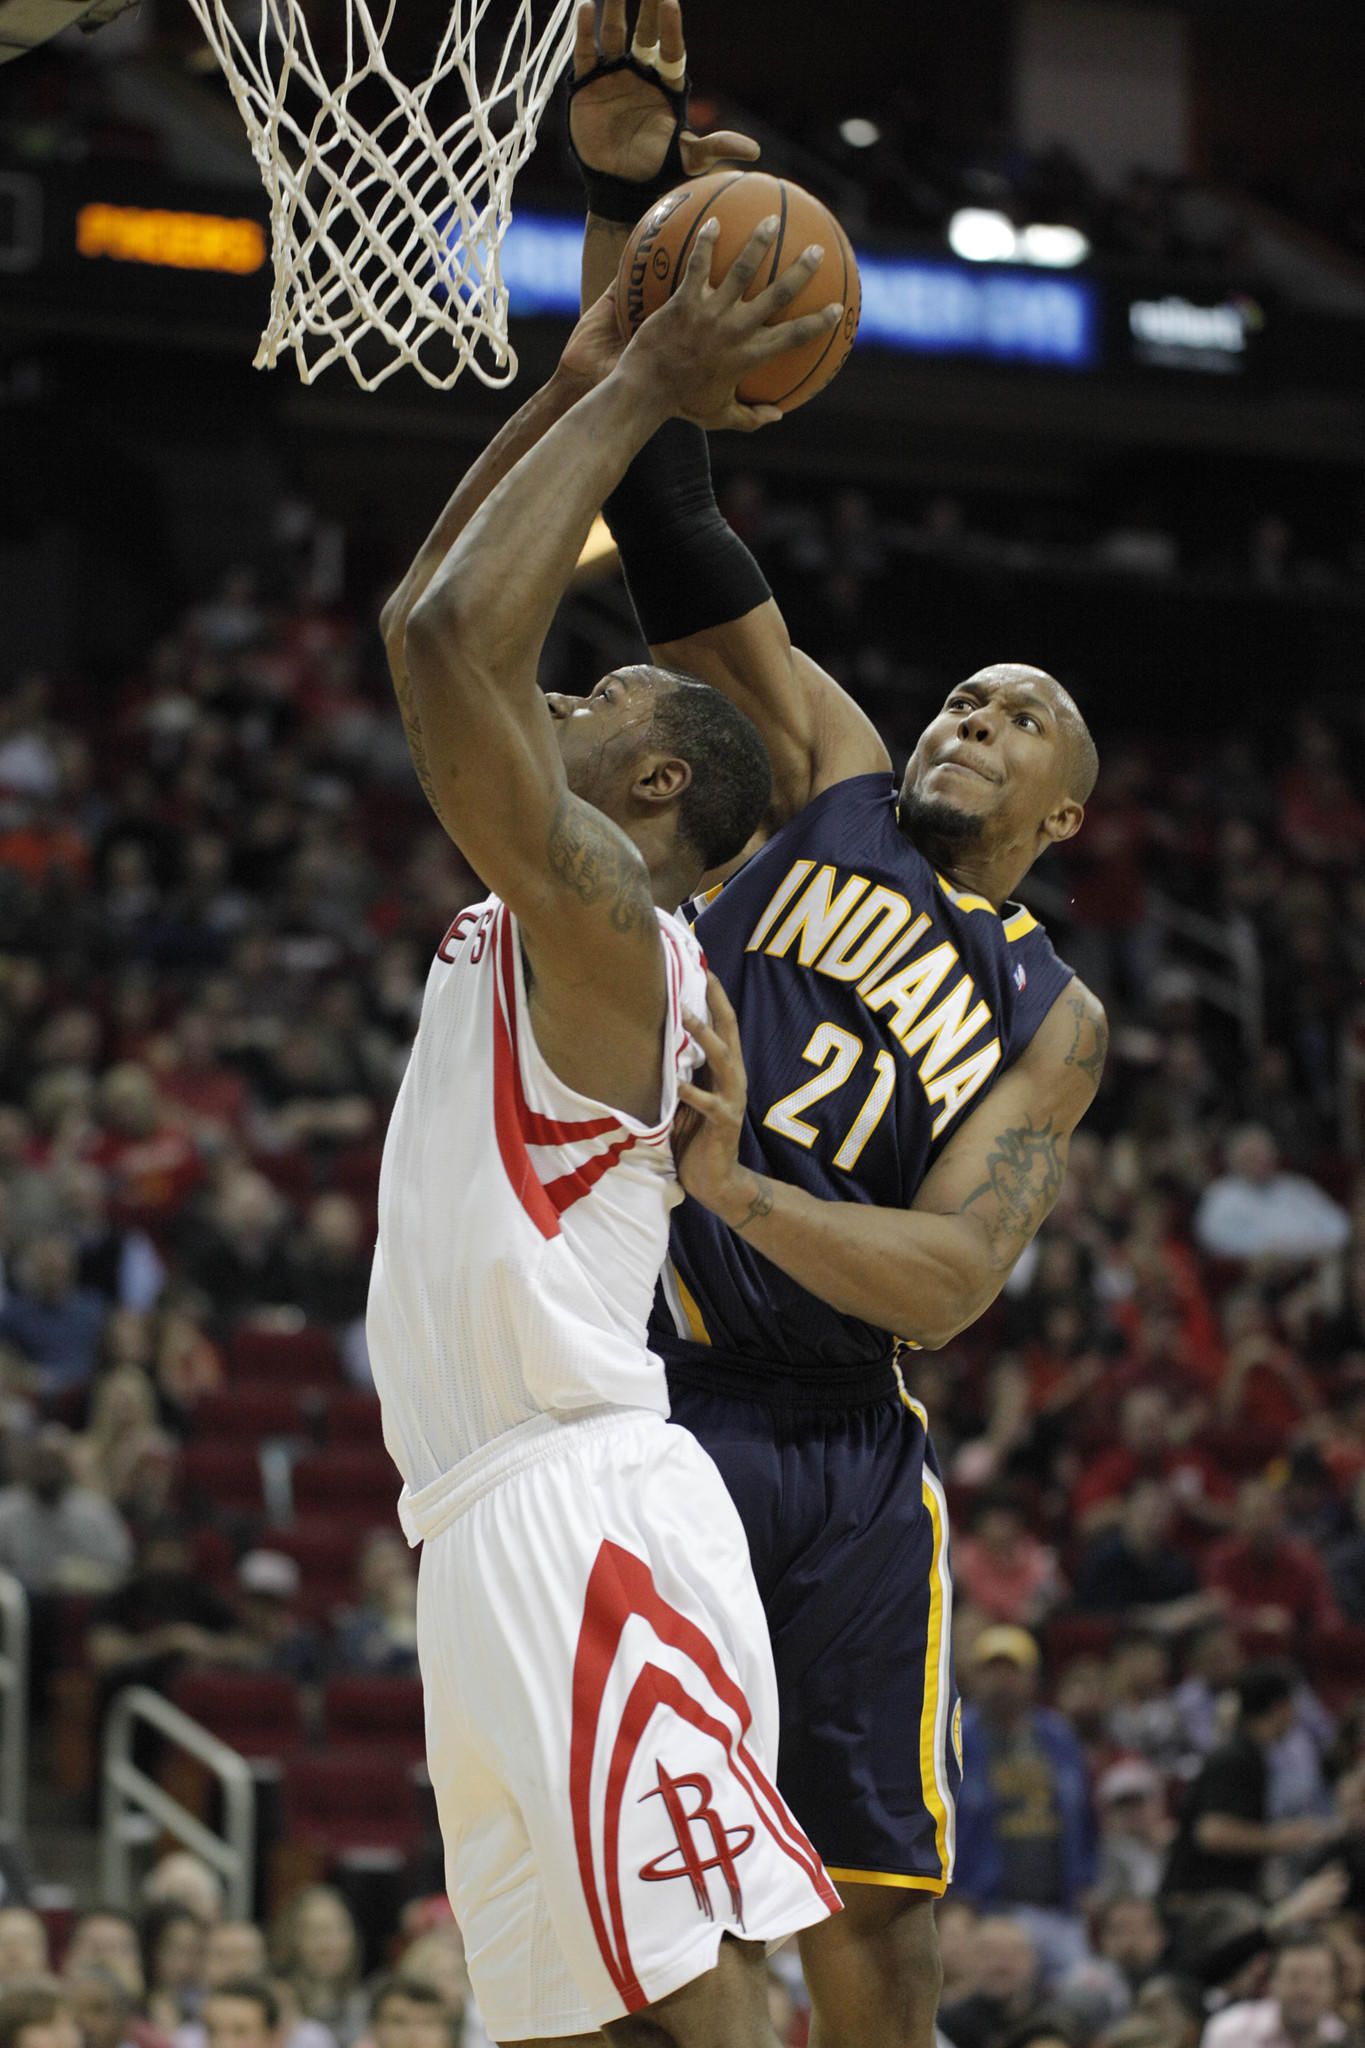 Indiana Pacers power forward David West (21) blocks the shot of Houston Rockets power forward Terrence Jones (6) during the third quarter at Toyota Center.